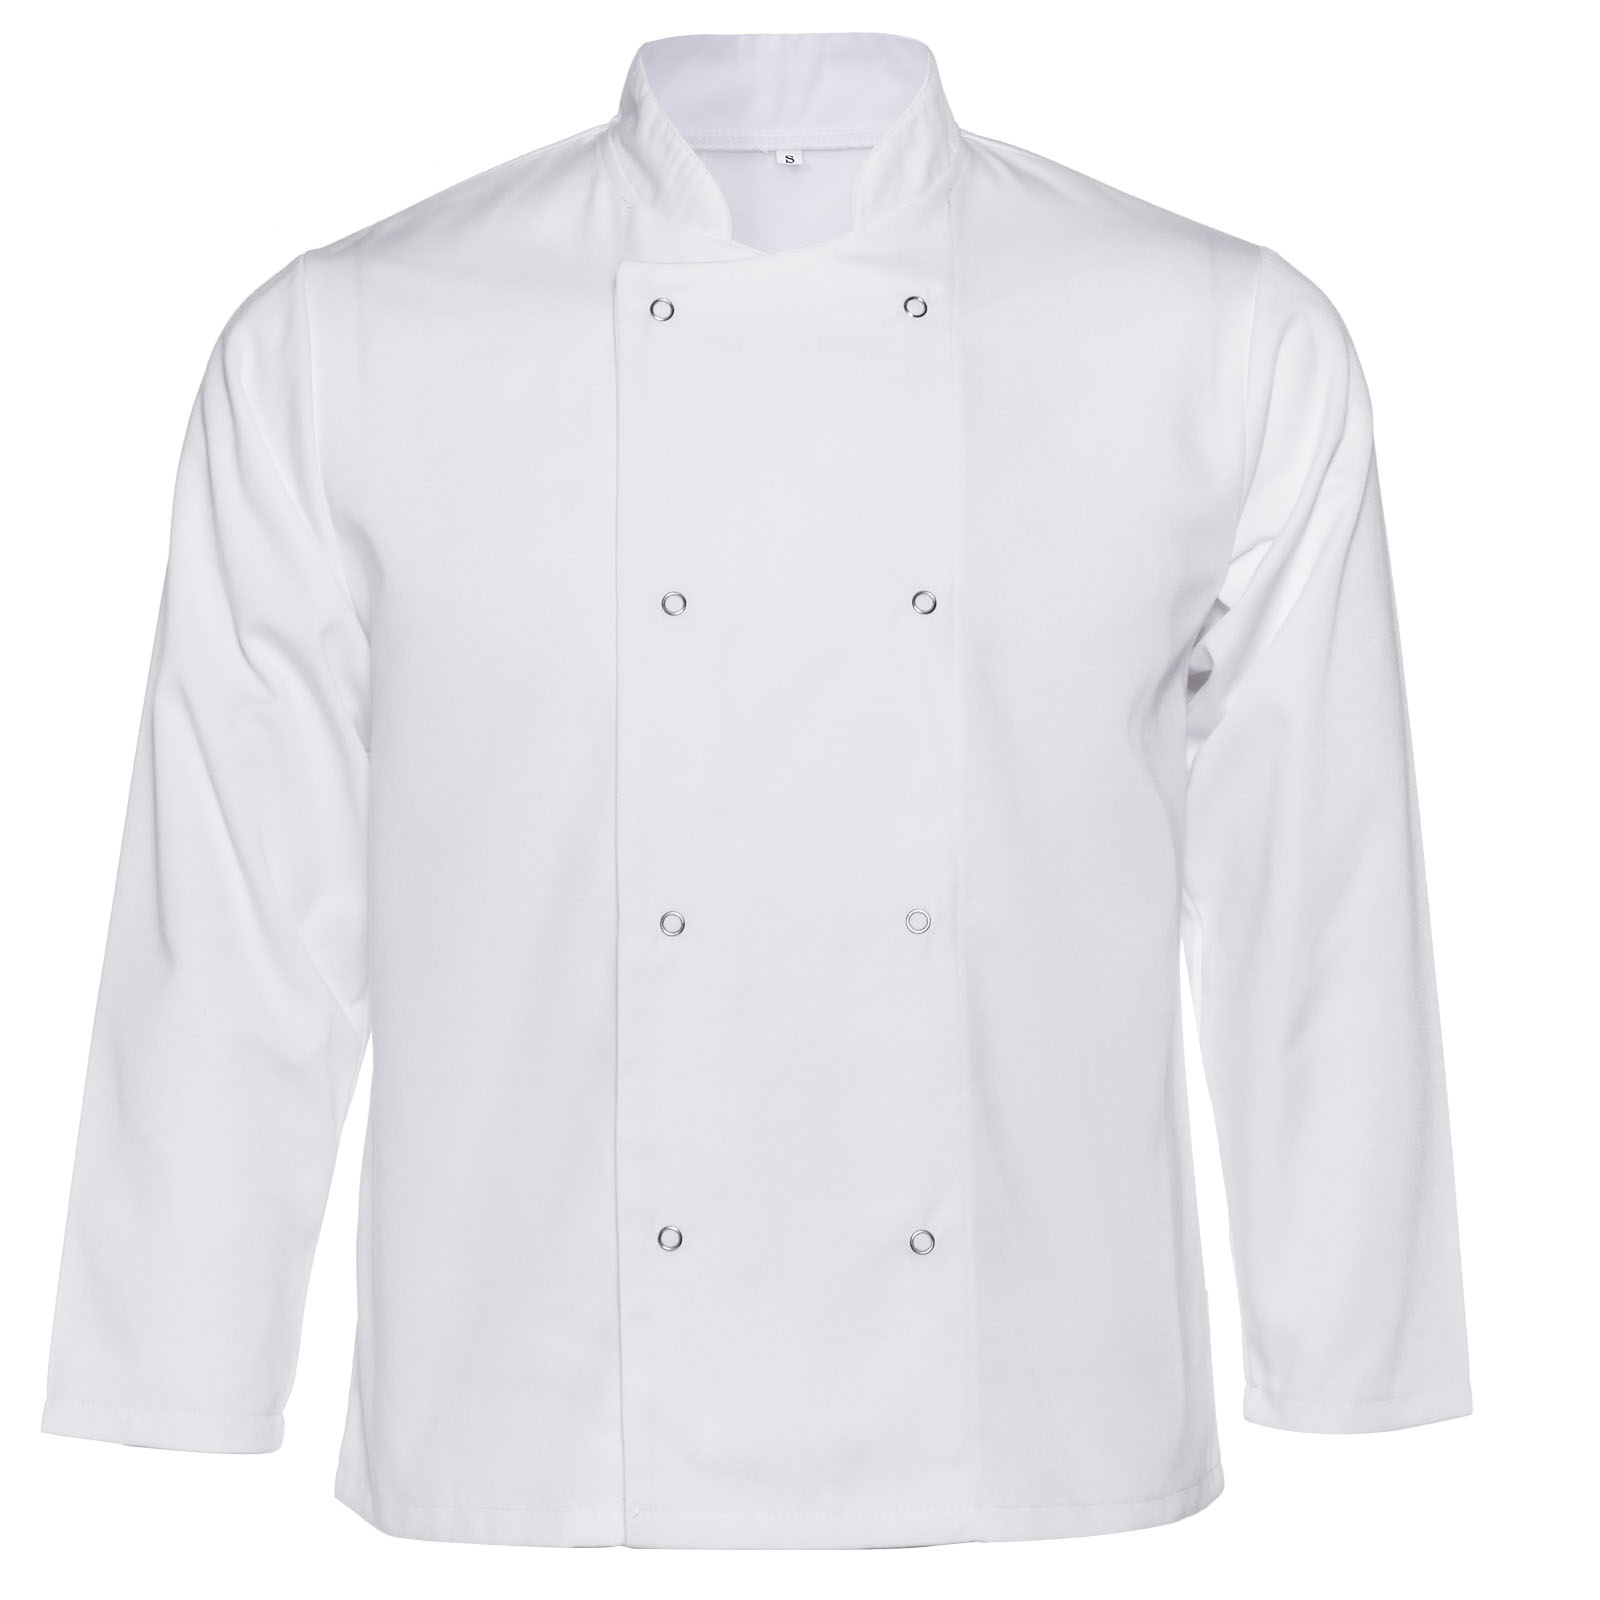 Chef Jacket Coat White Black Trousers Kitchen Catering